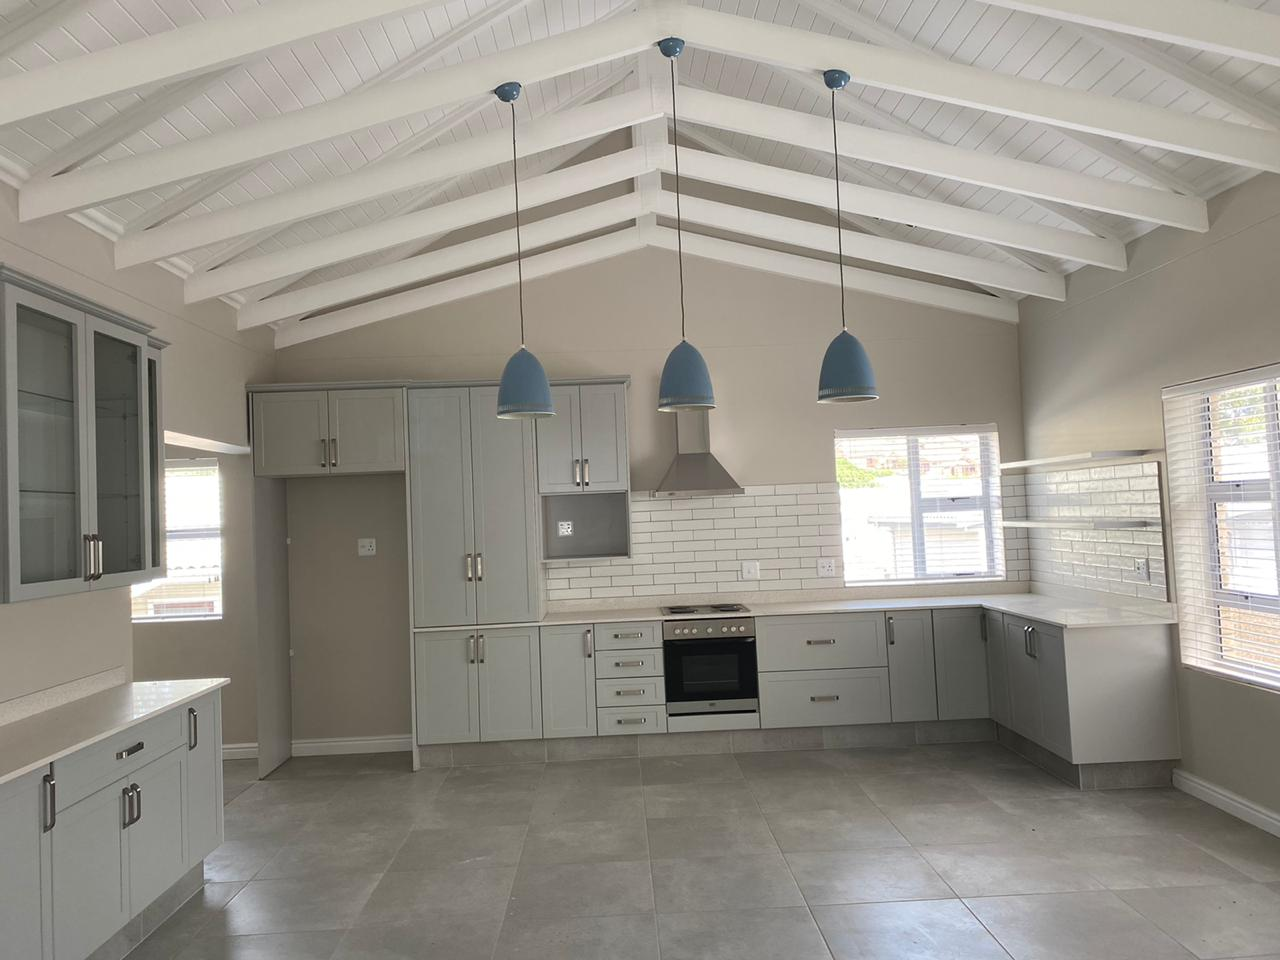 Kitchen with open beam roof - Newly built ranch-style house - Schoeman Trio Builders, Mossel Bay